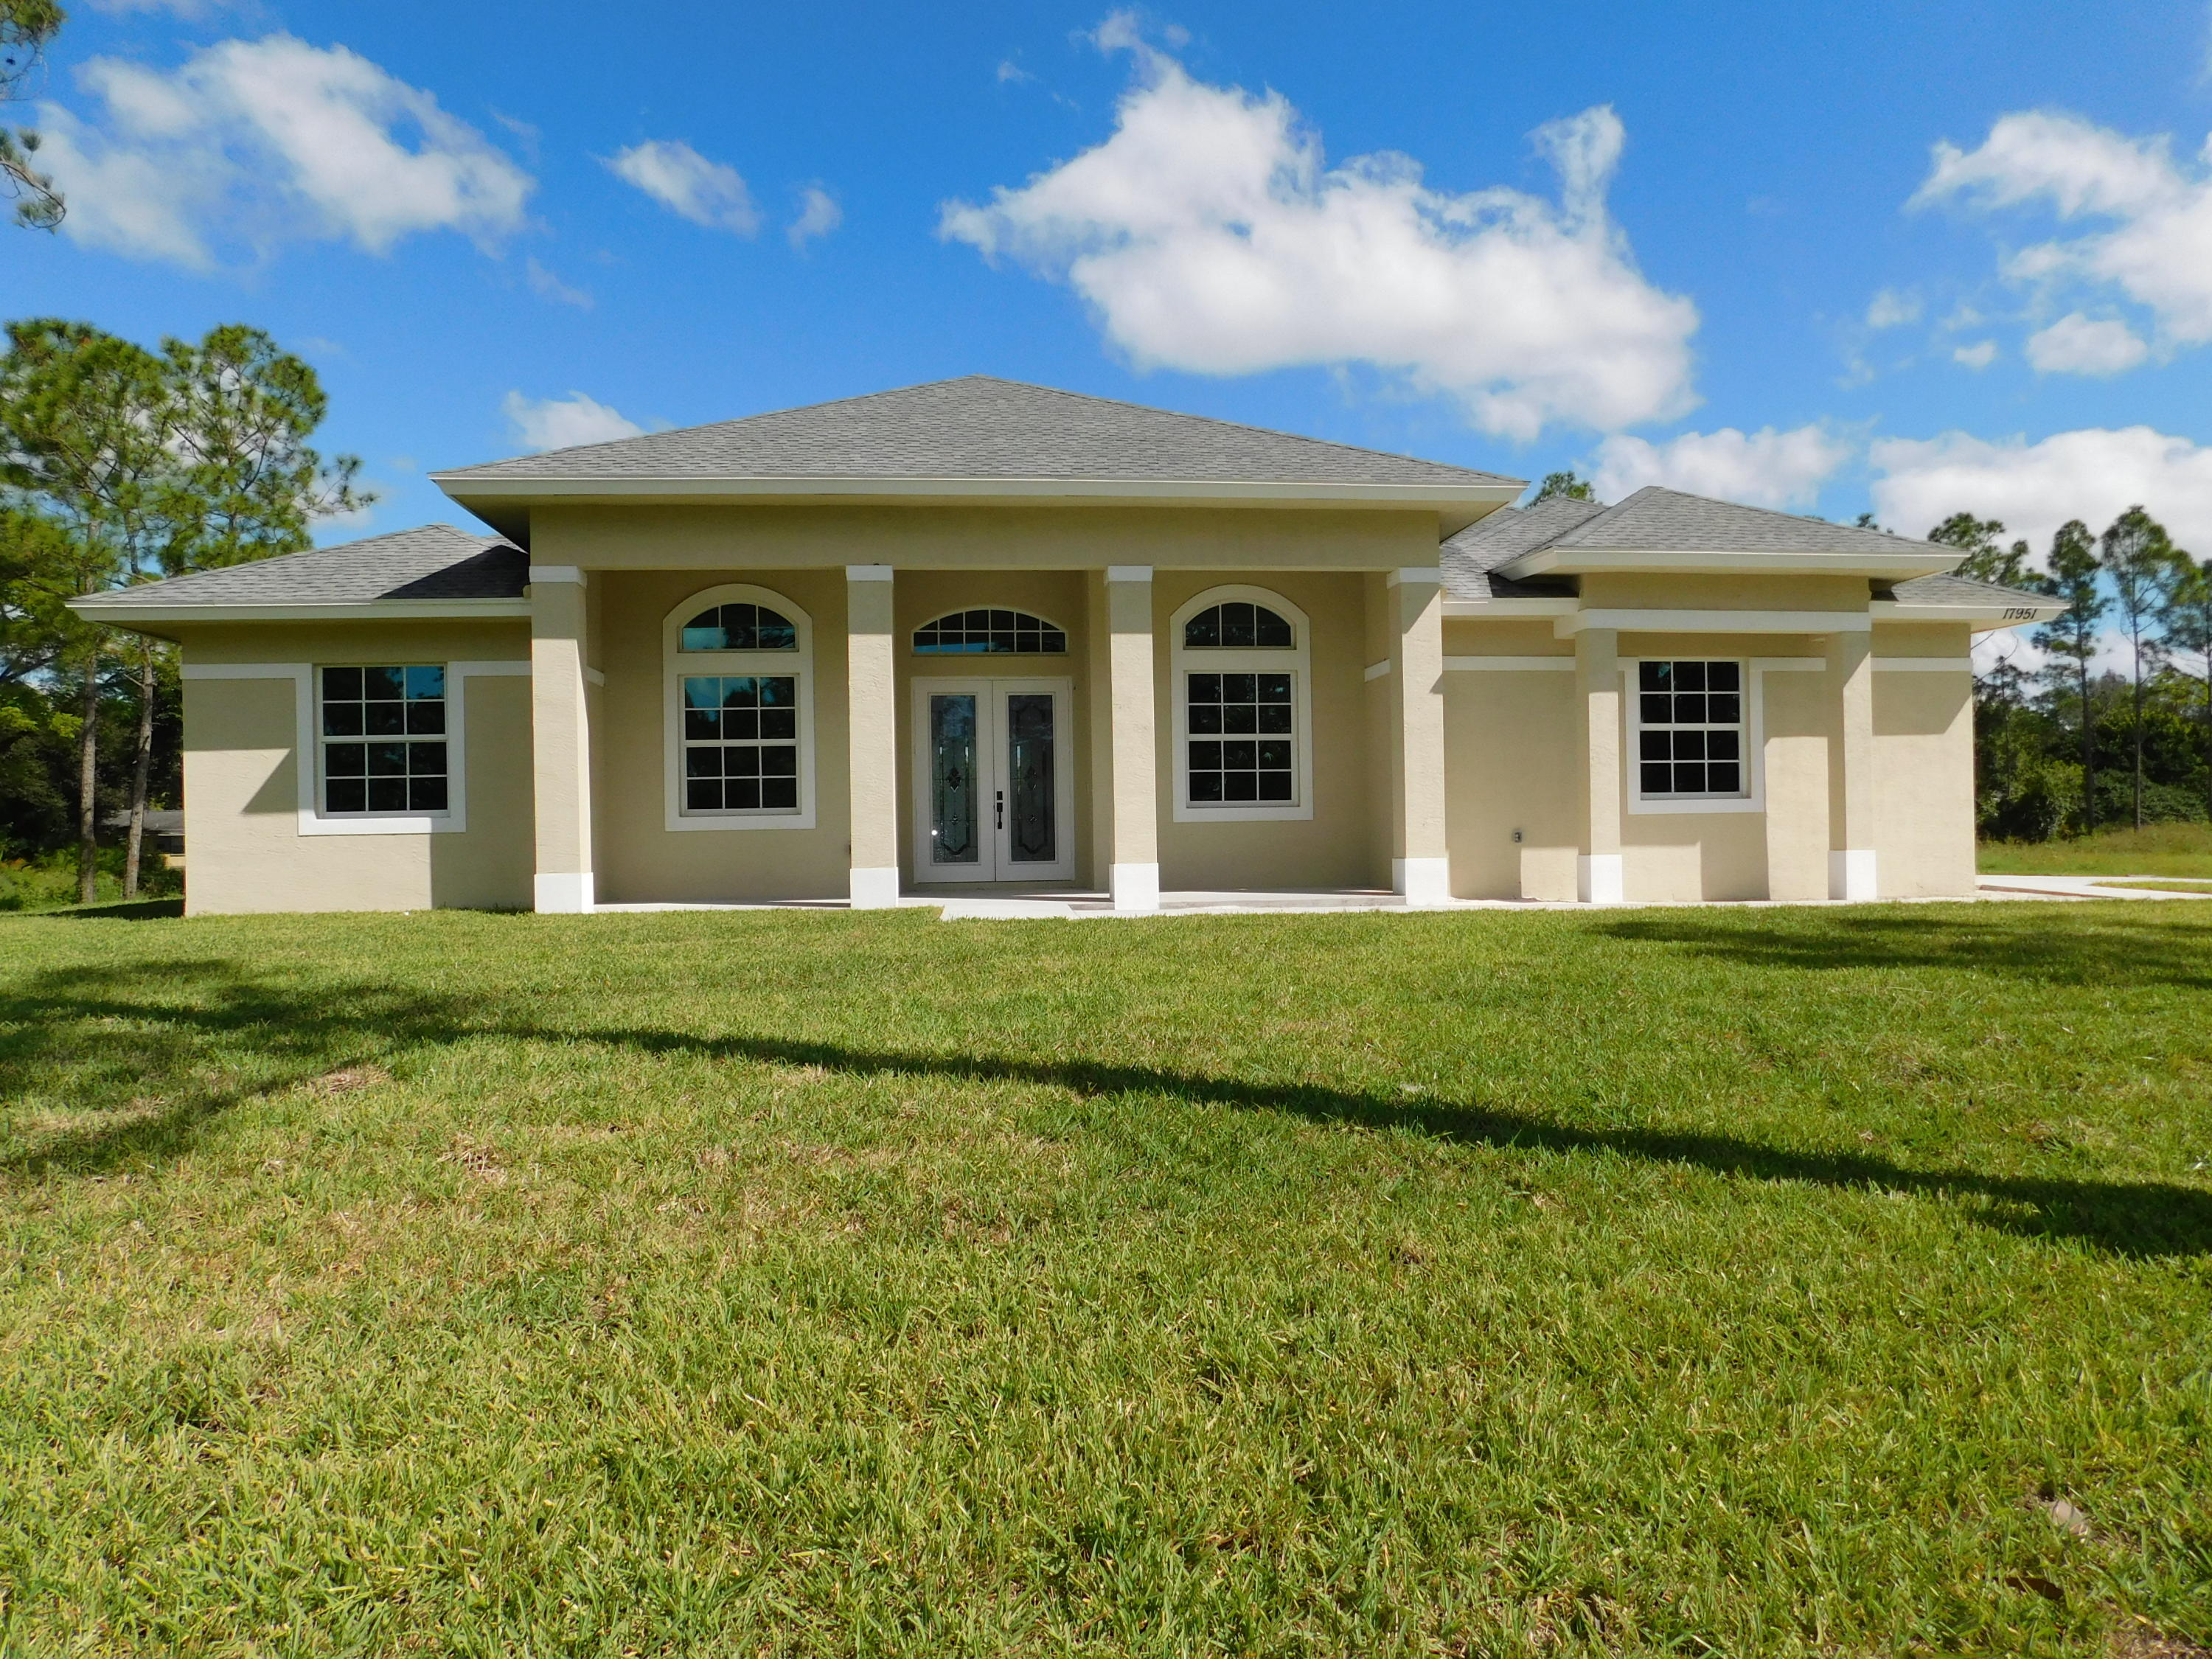 17951 47th Court N, Loxahatchee in Palm Beach County, FL 33470 Home for Sale